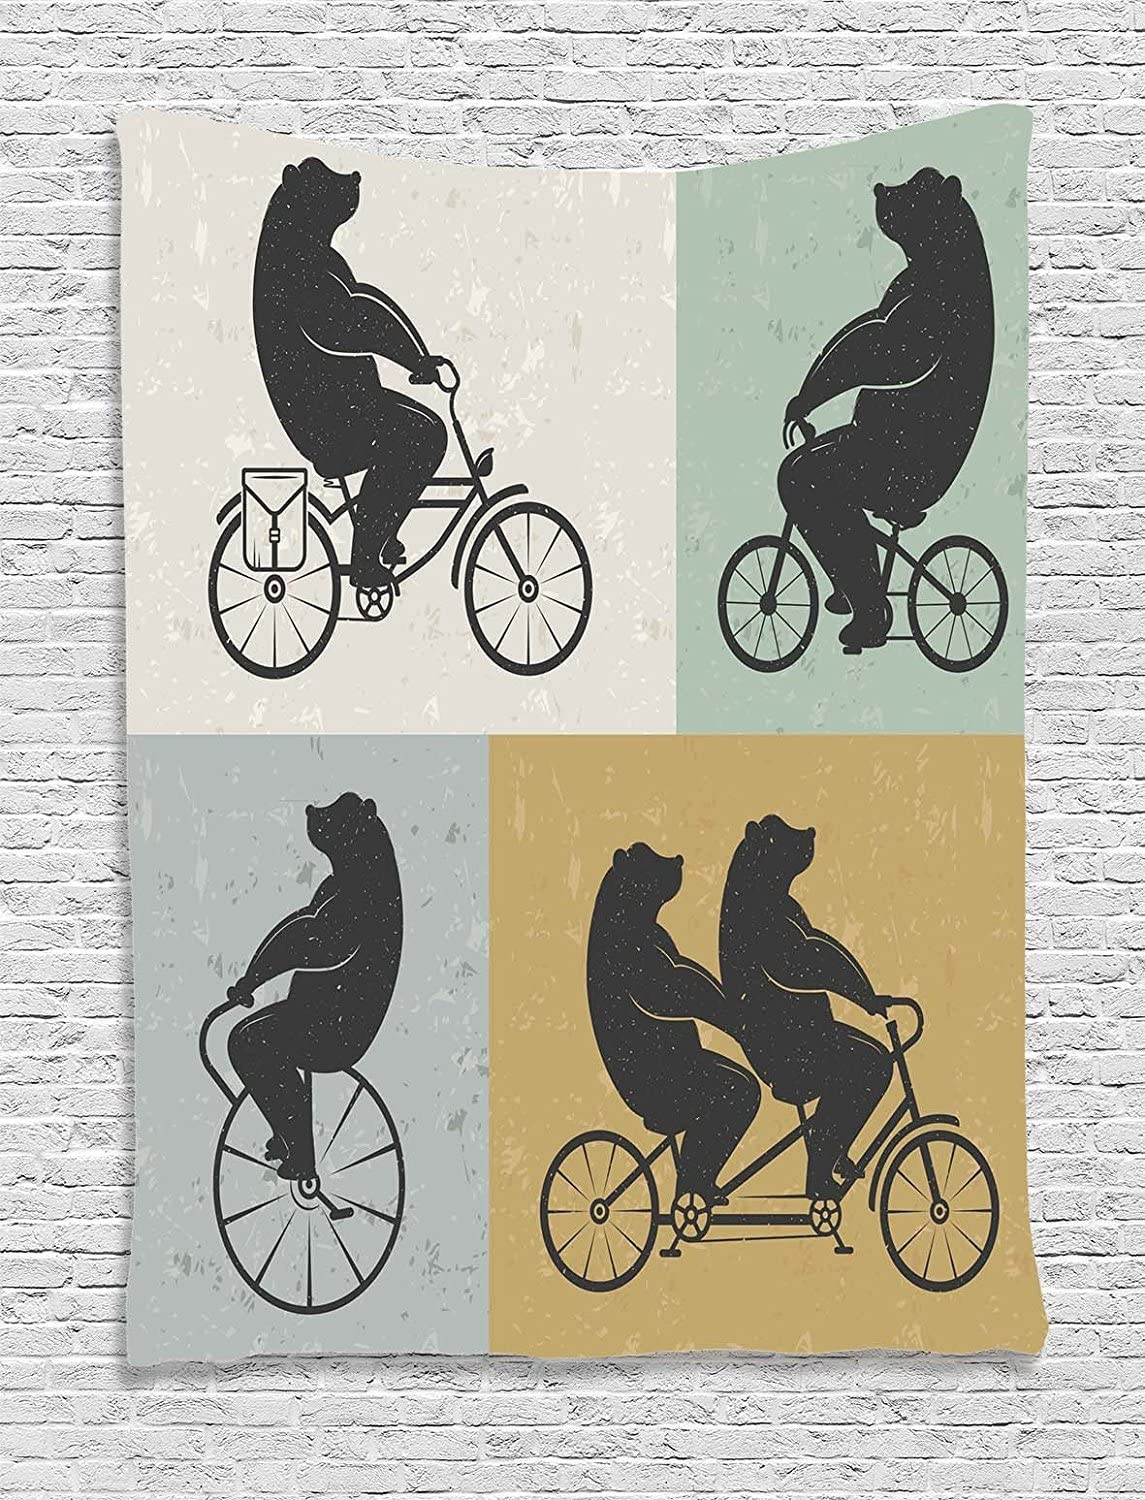 TAMMY CHAPPELL Vintage Decor Tapestry, Big Cute Bear on a Bike Bicycle Cycling Hipster Circus Life Outdoor Animal Enjoy, Wall Hanging for Bedroom Living Room Dorm, 60WX80L Inches, Multi